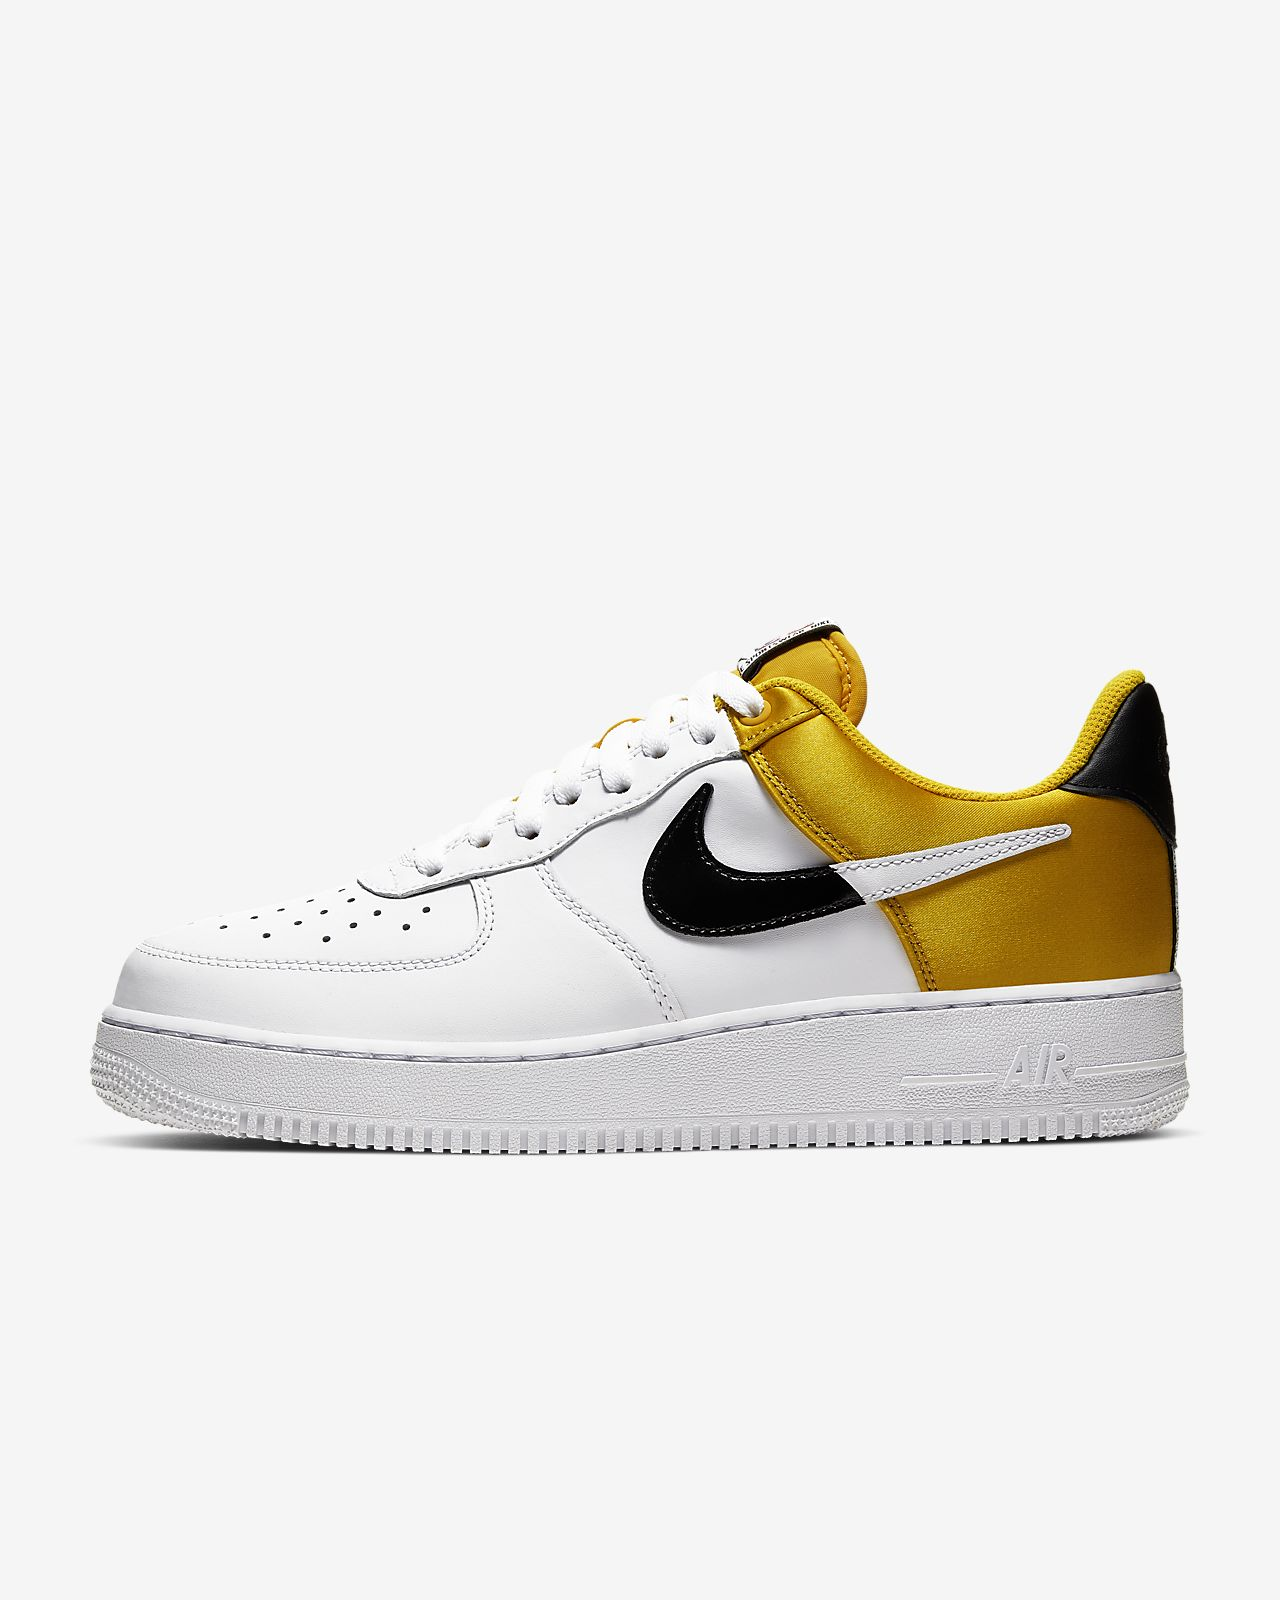 Calzado Nike Air Force 1 NBA Low